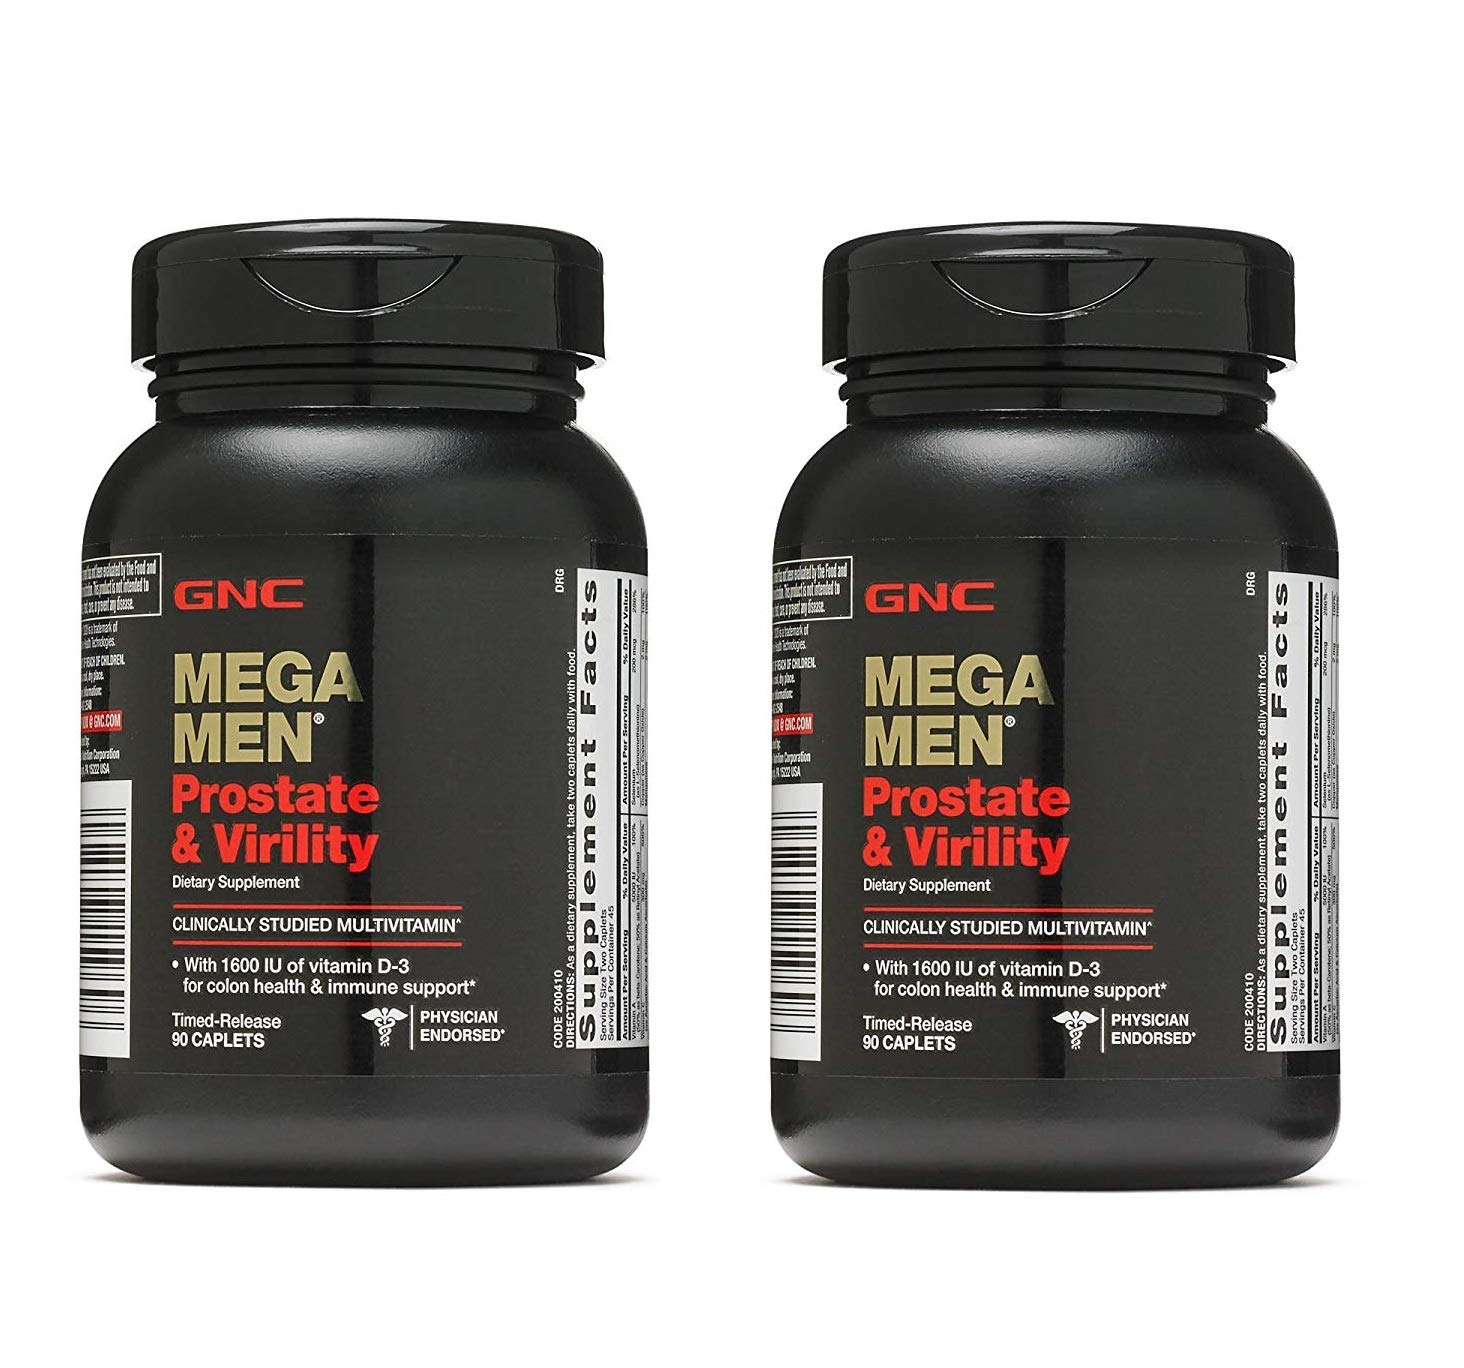 GNC Mega Men Prostate and Virility Multivitamin with Saw Palmetto Lycopene (2 Pack - 180 CAPLETS)